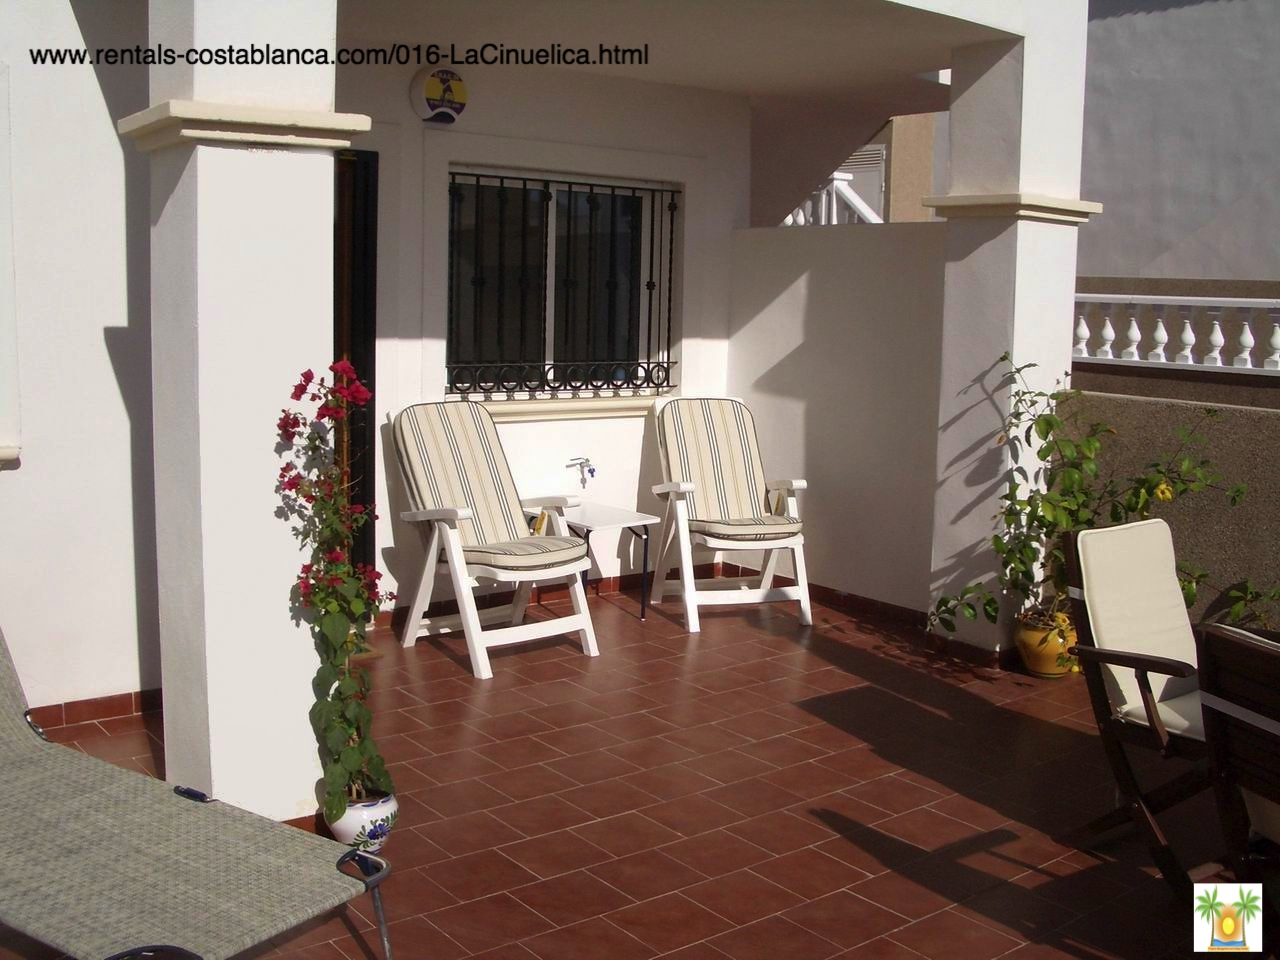 Location & Hébergement de Vacances - Appartements - Spain - Torrevieja / Alicante / Costa Blanca - Torrevieja